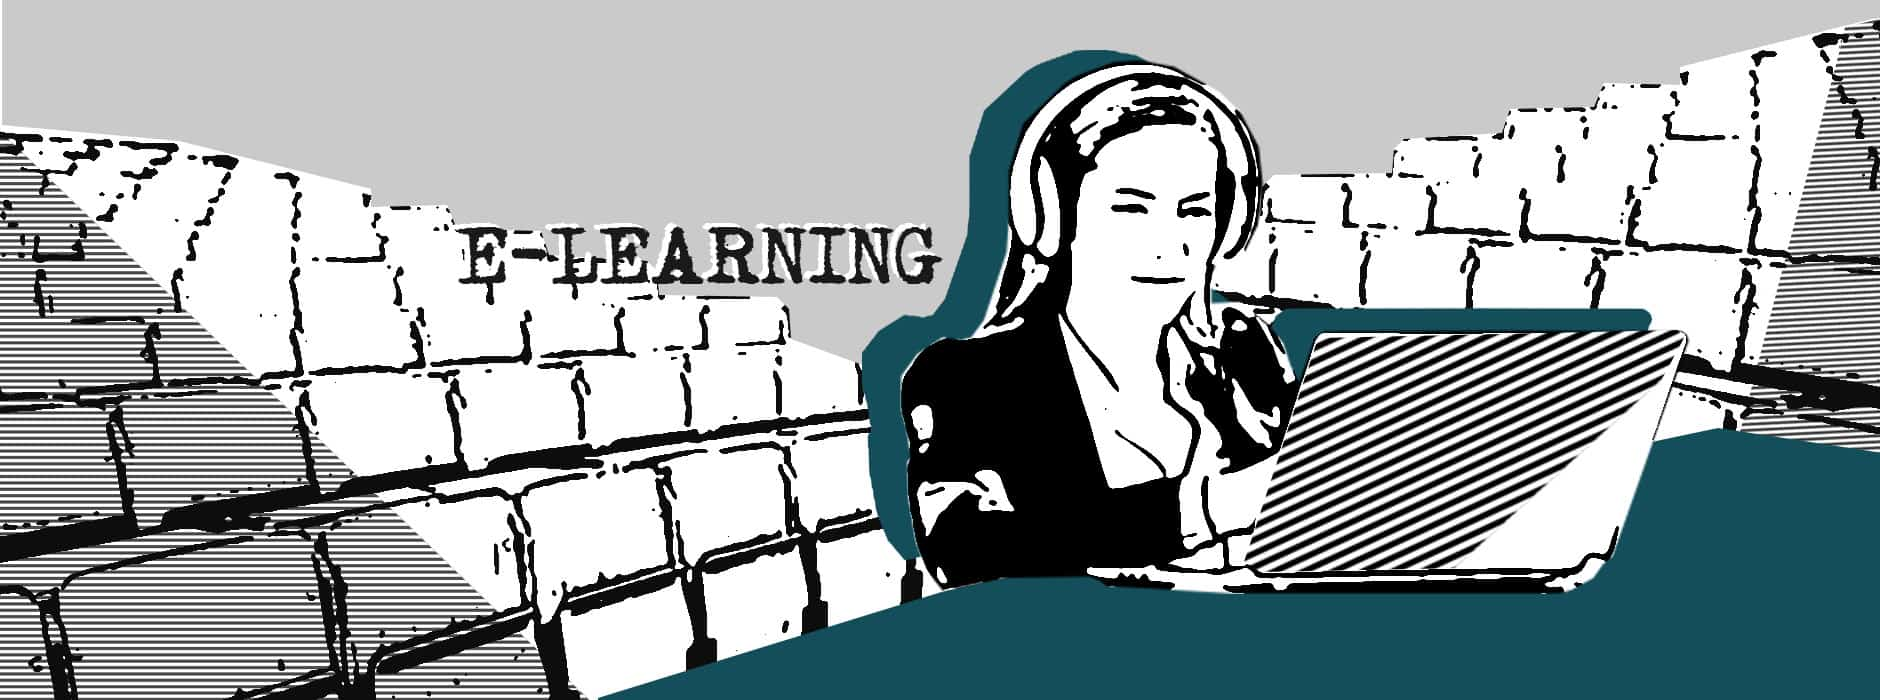 Header Grafik E-Learning